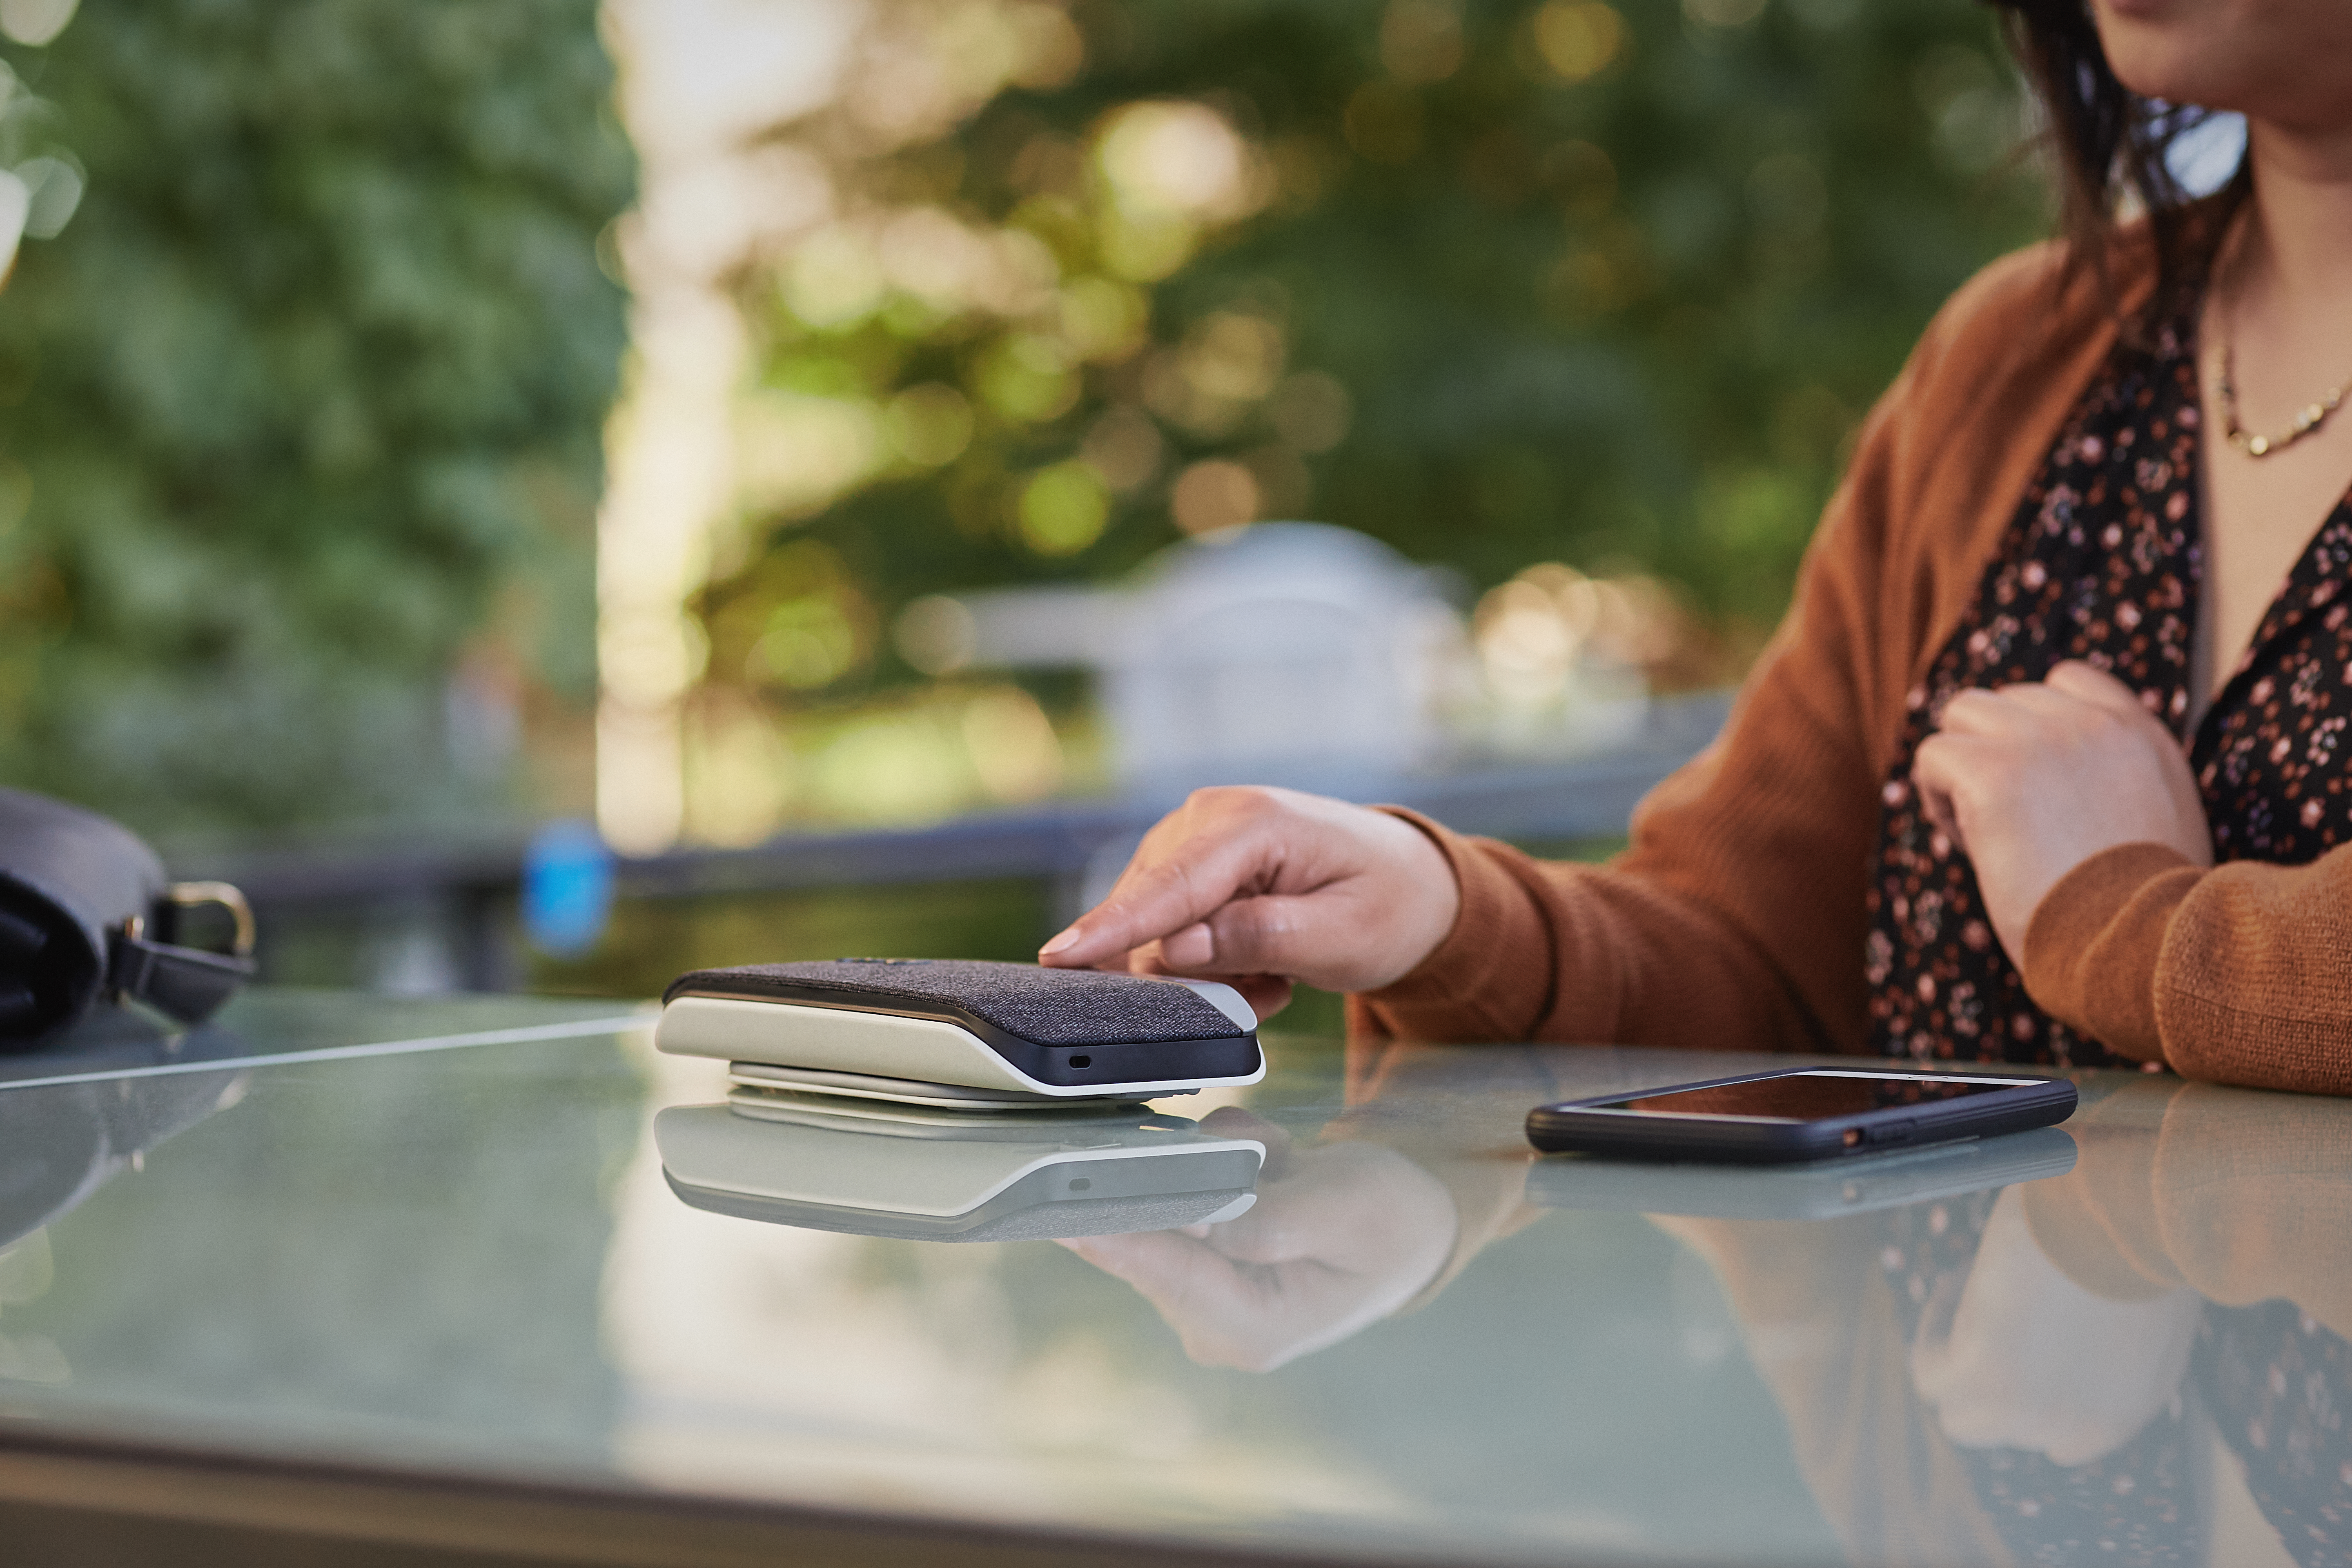 woman using Poly sync 20 outside